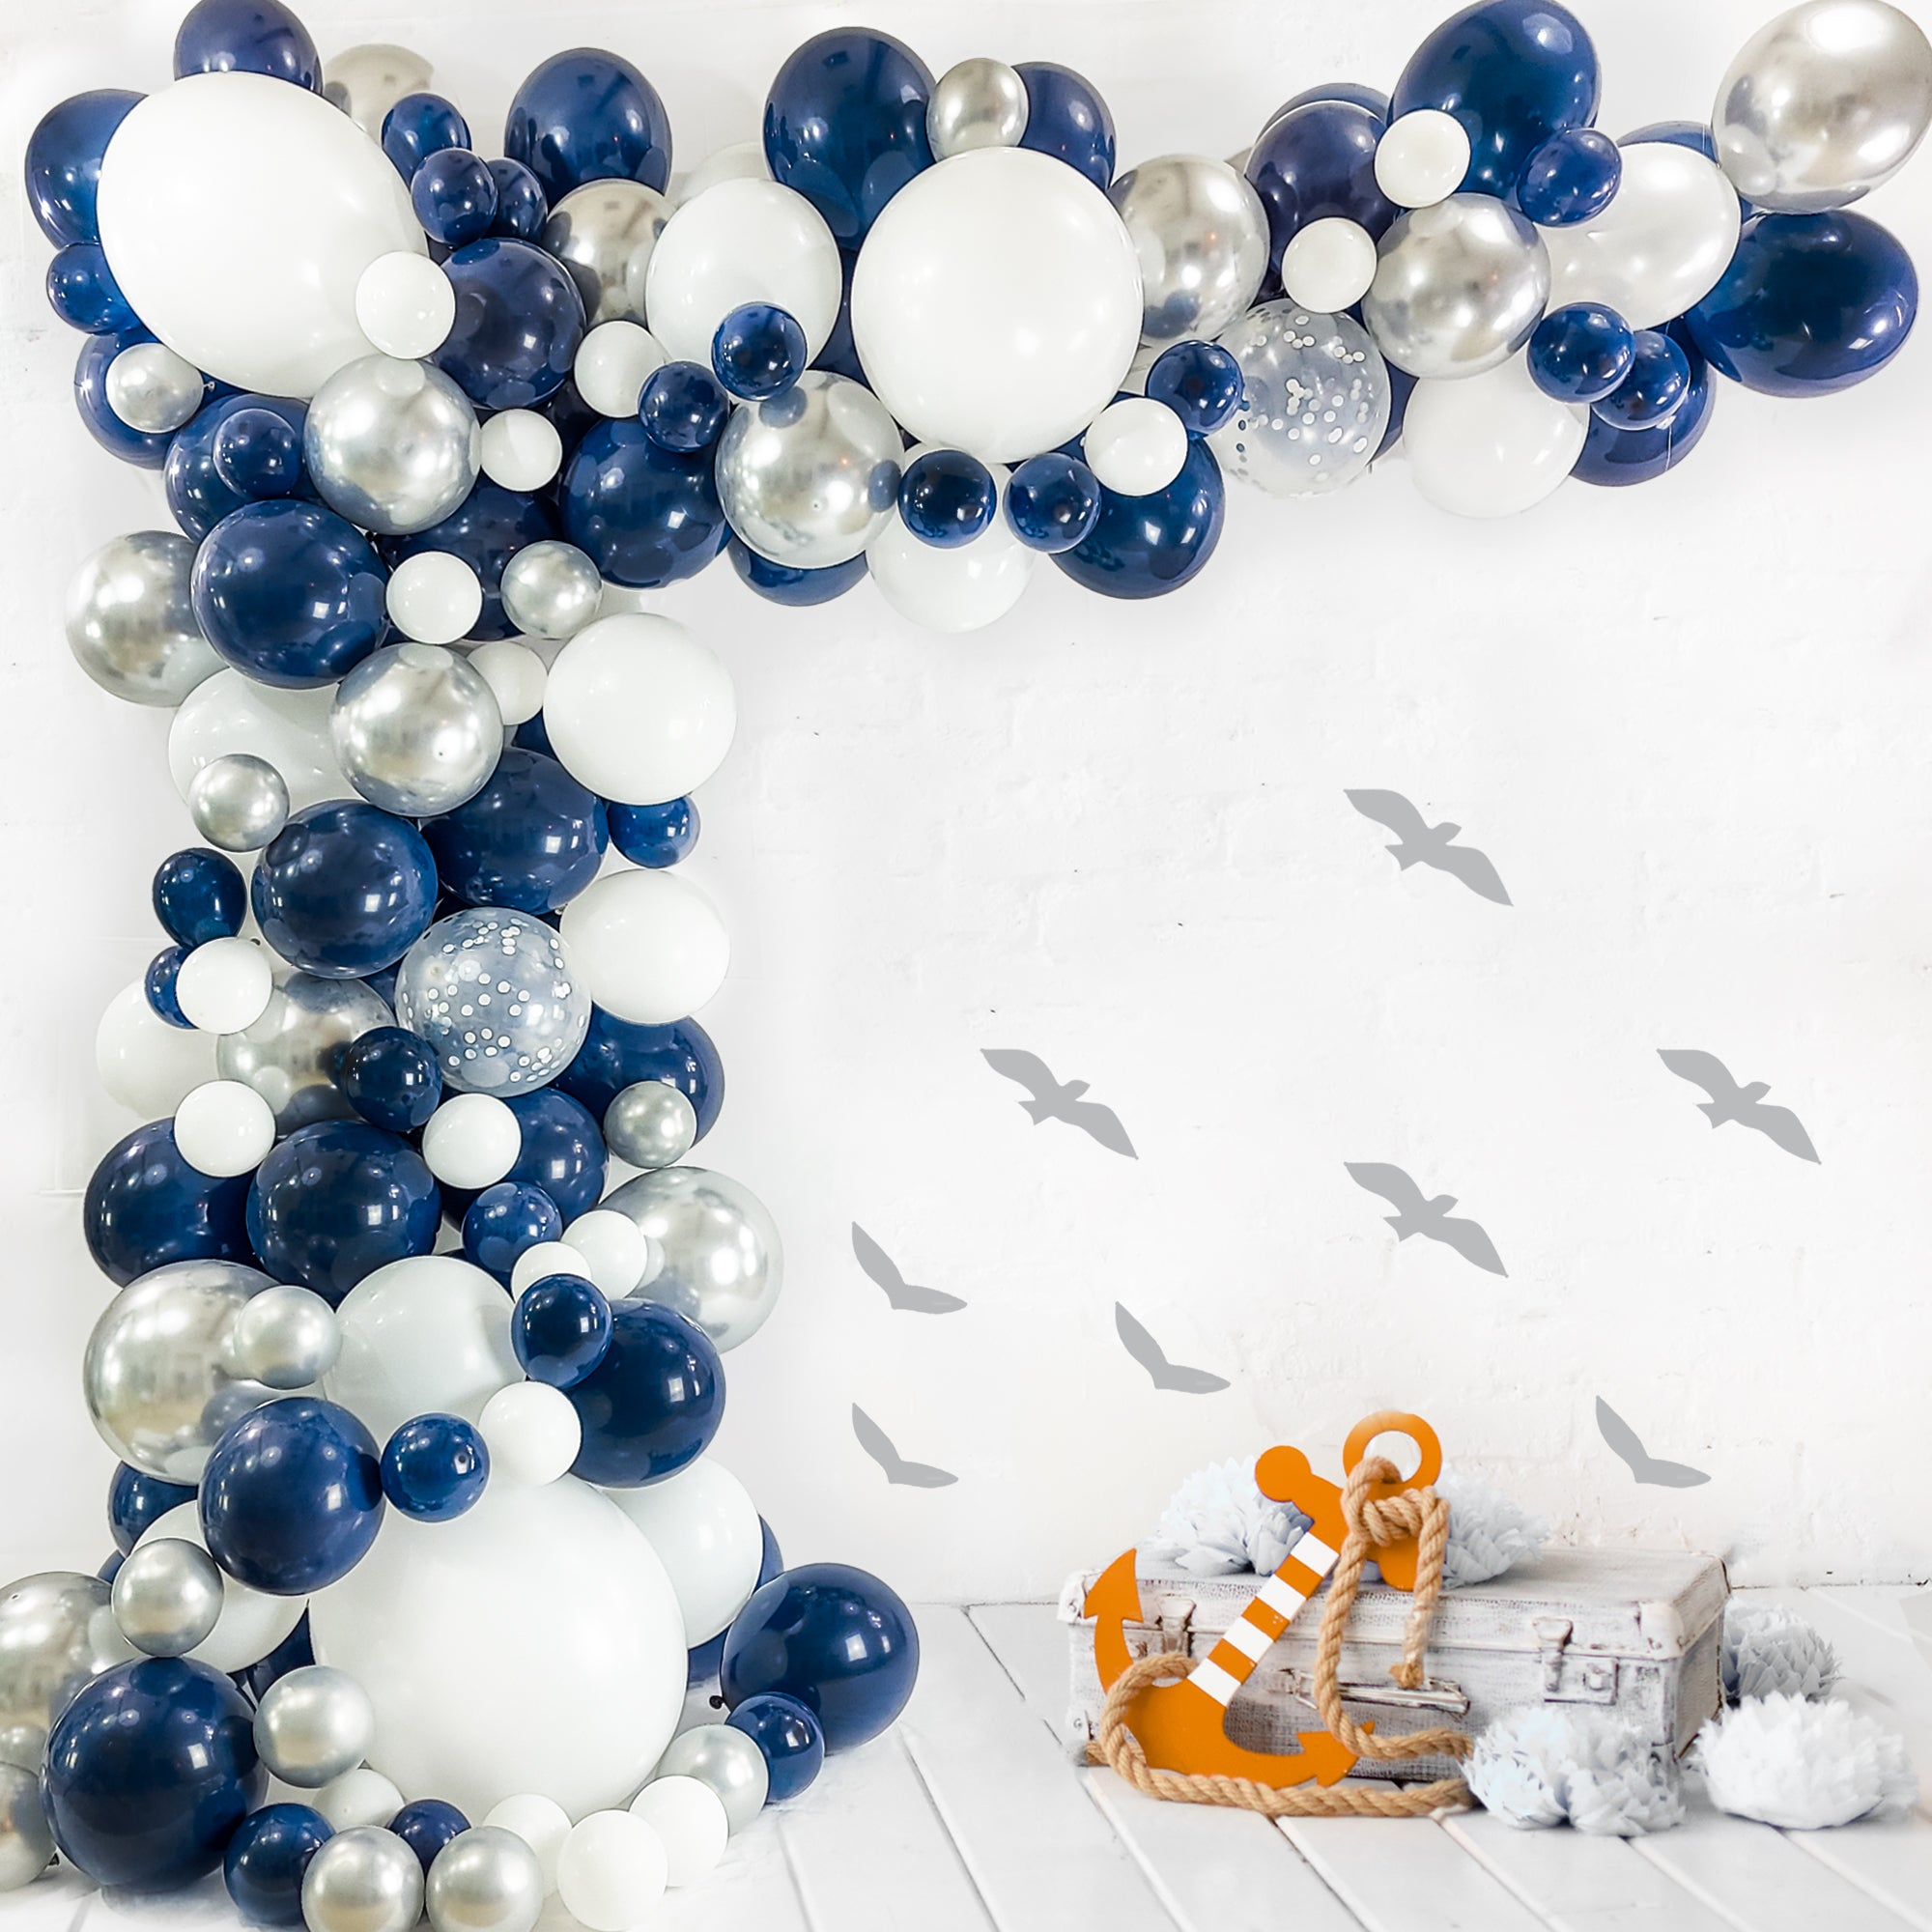 Navy Blue Balloon Garland Kit 120 Pack Navy Blue Chrome Silver W Bloonsy Balloon Garlands